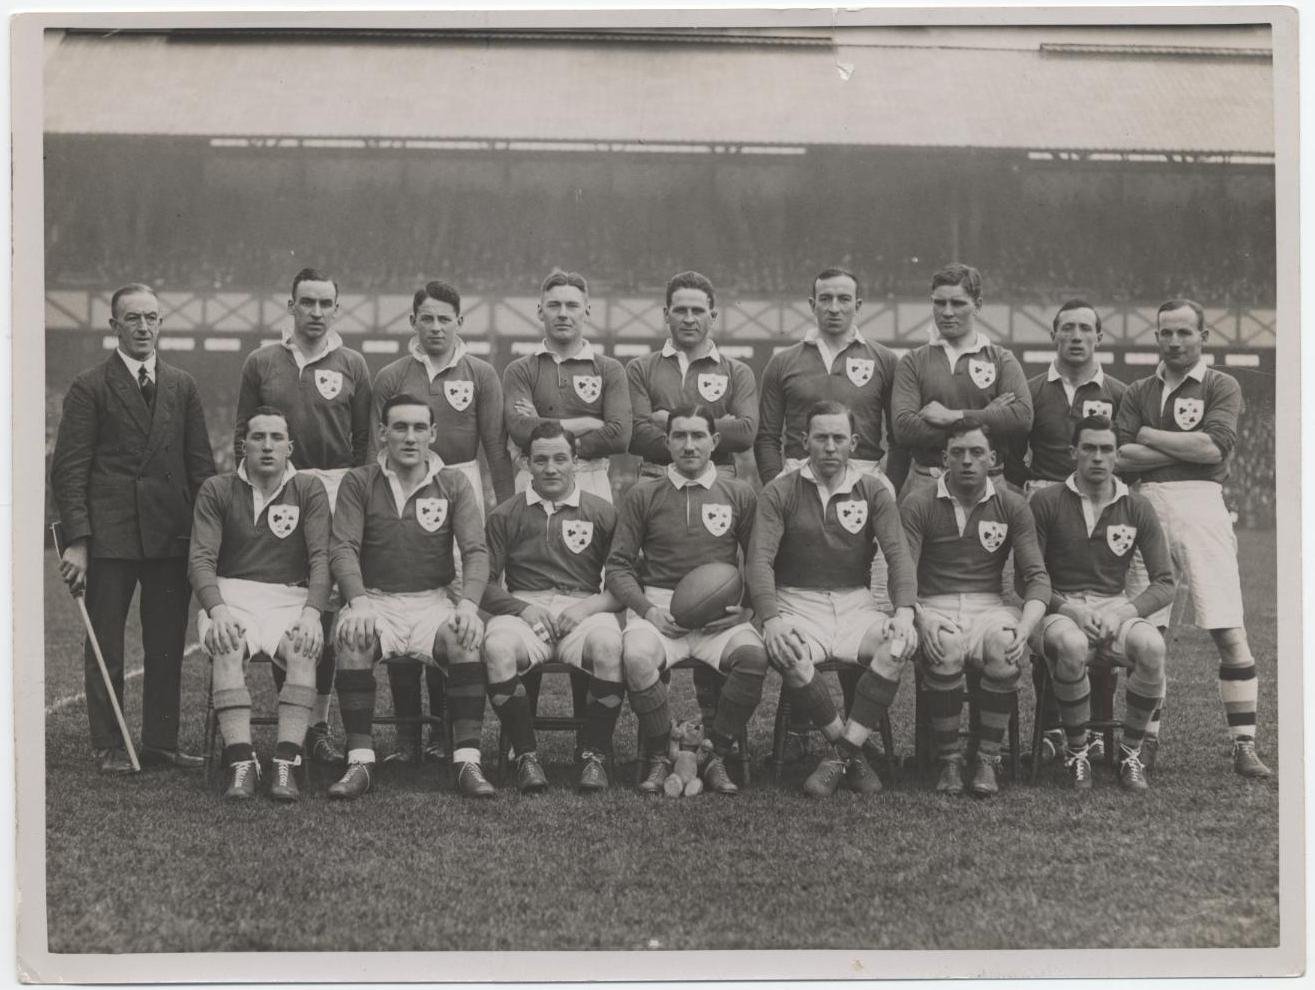 Black and white photograph of 15 players in rugby kit and 1 official in a suit and tie